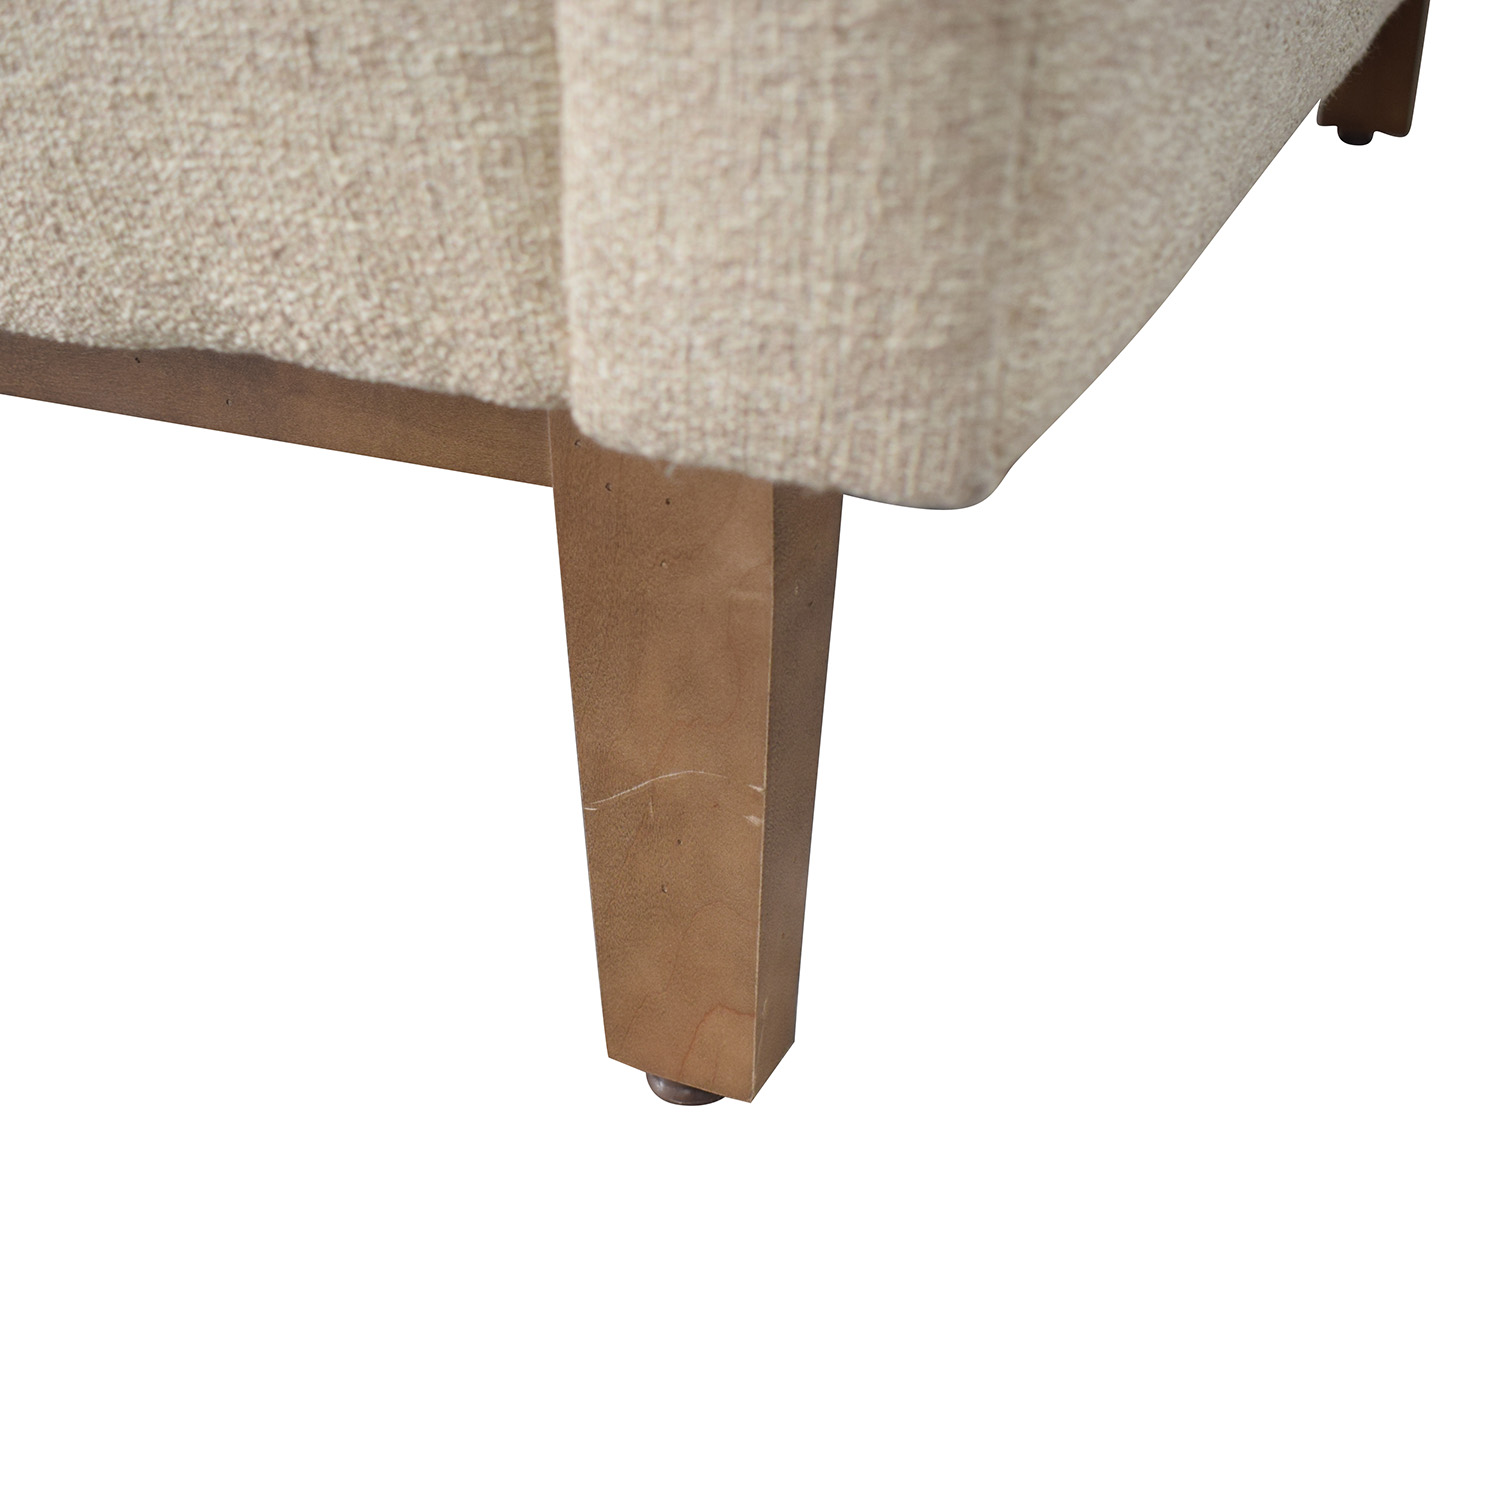 Rowe Furniture Rowe Furniture Beige Three Cushion Sofa coupon